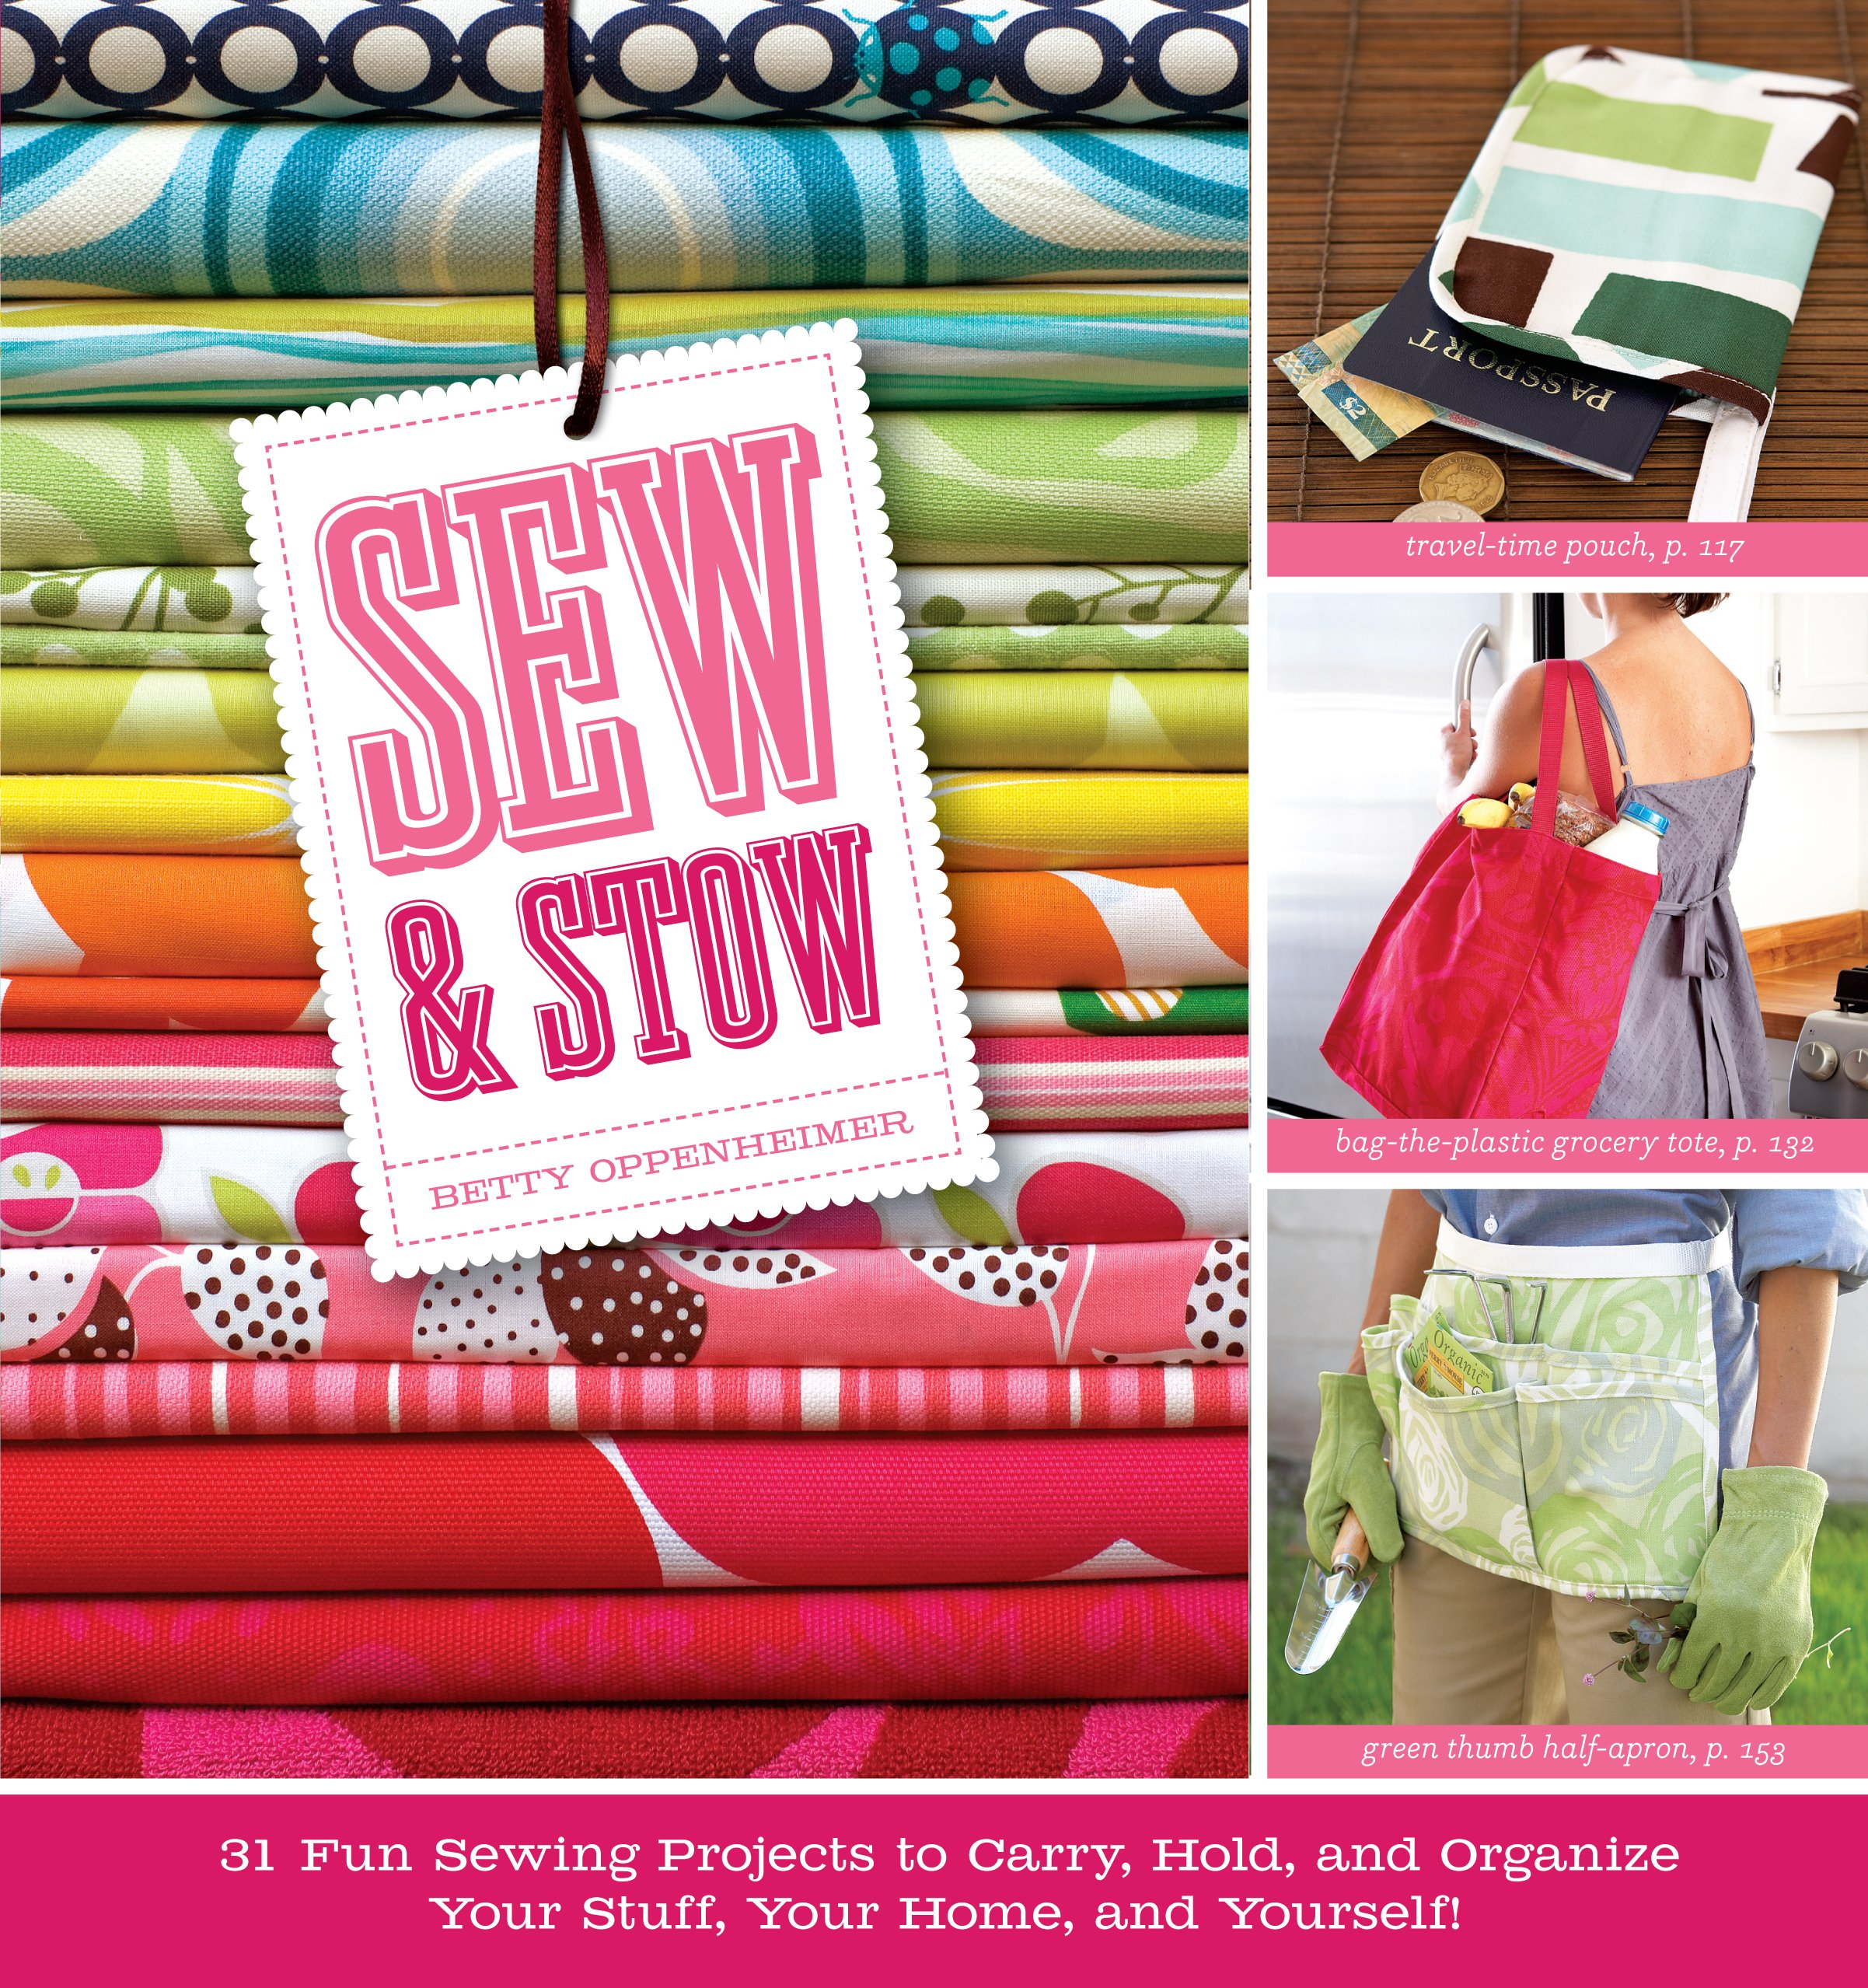 Sew stow 31 fun sewing projects to carry hold and organize your sew stow 31 fun sewing projects to carry hold and organize your stuff your home and yourself betty oppenheimer 9781603420273 amazon books solutioingenieria Gallery